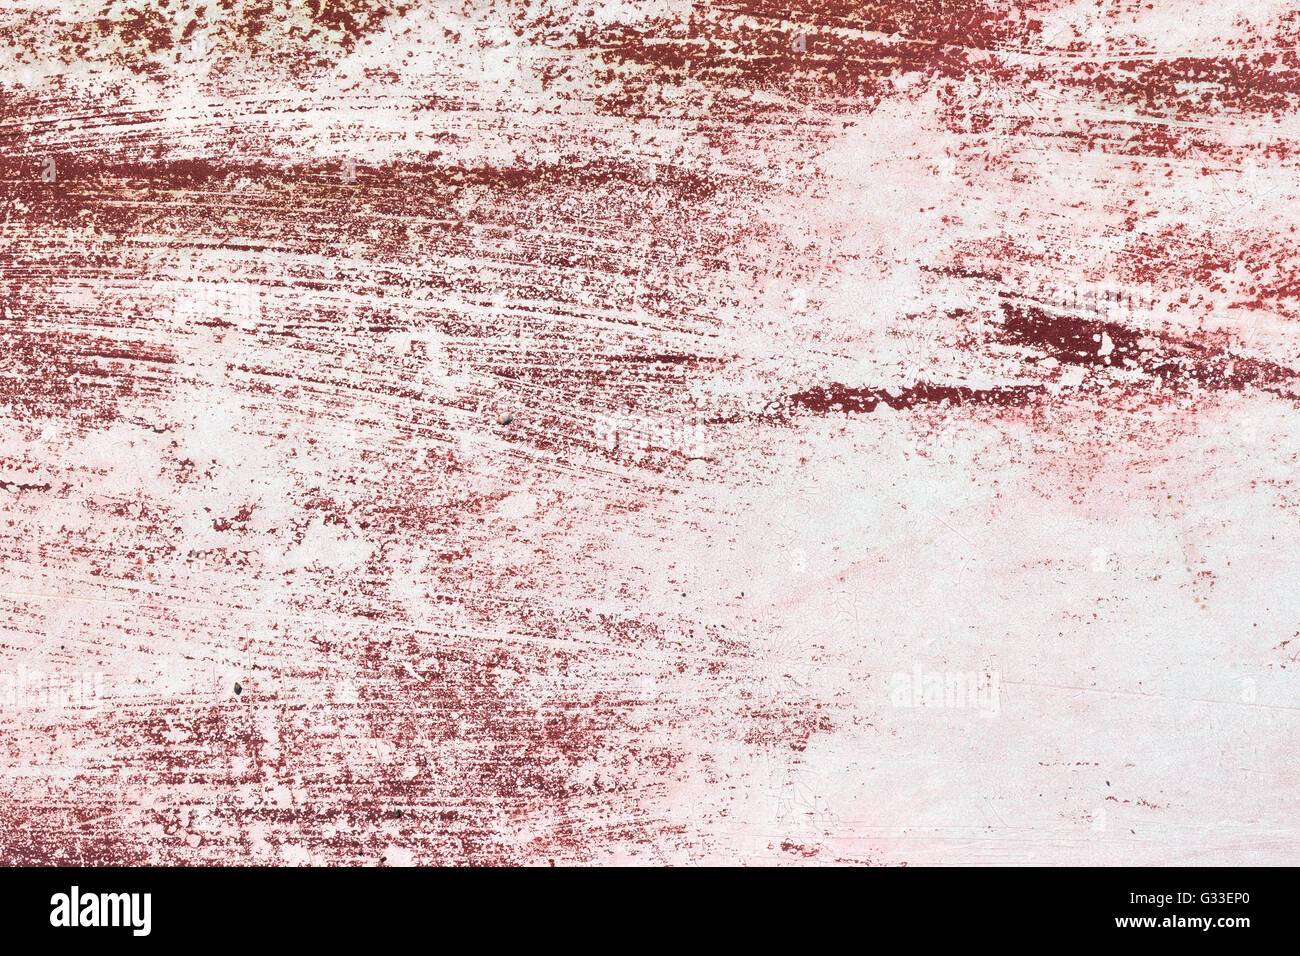 Close view of the deep red paint on the bottom of a boat that has been worn off. - Stock Image